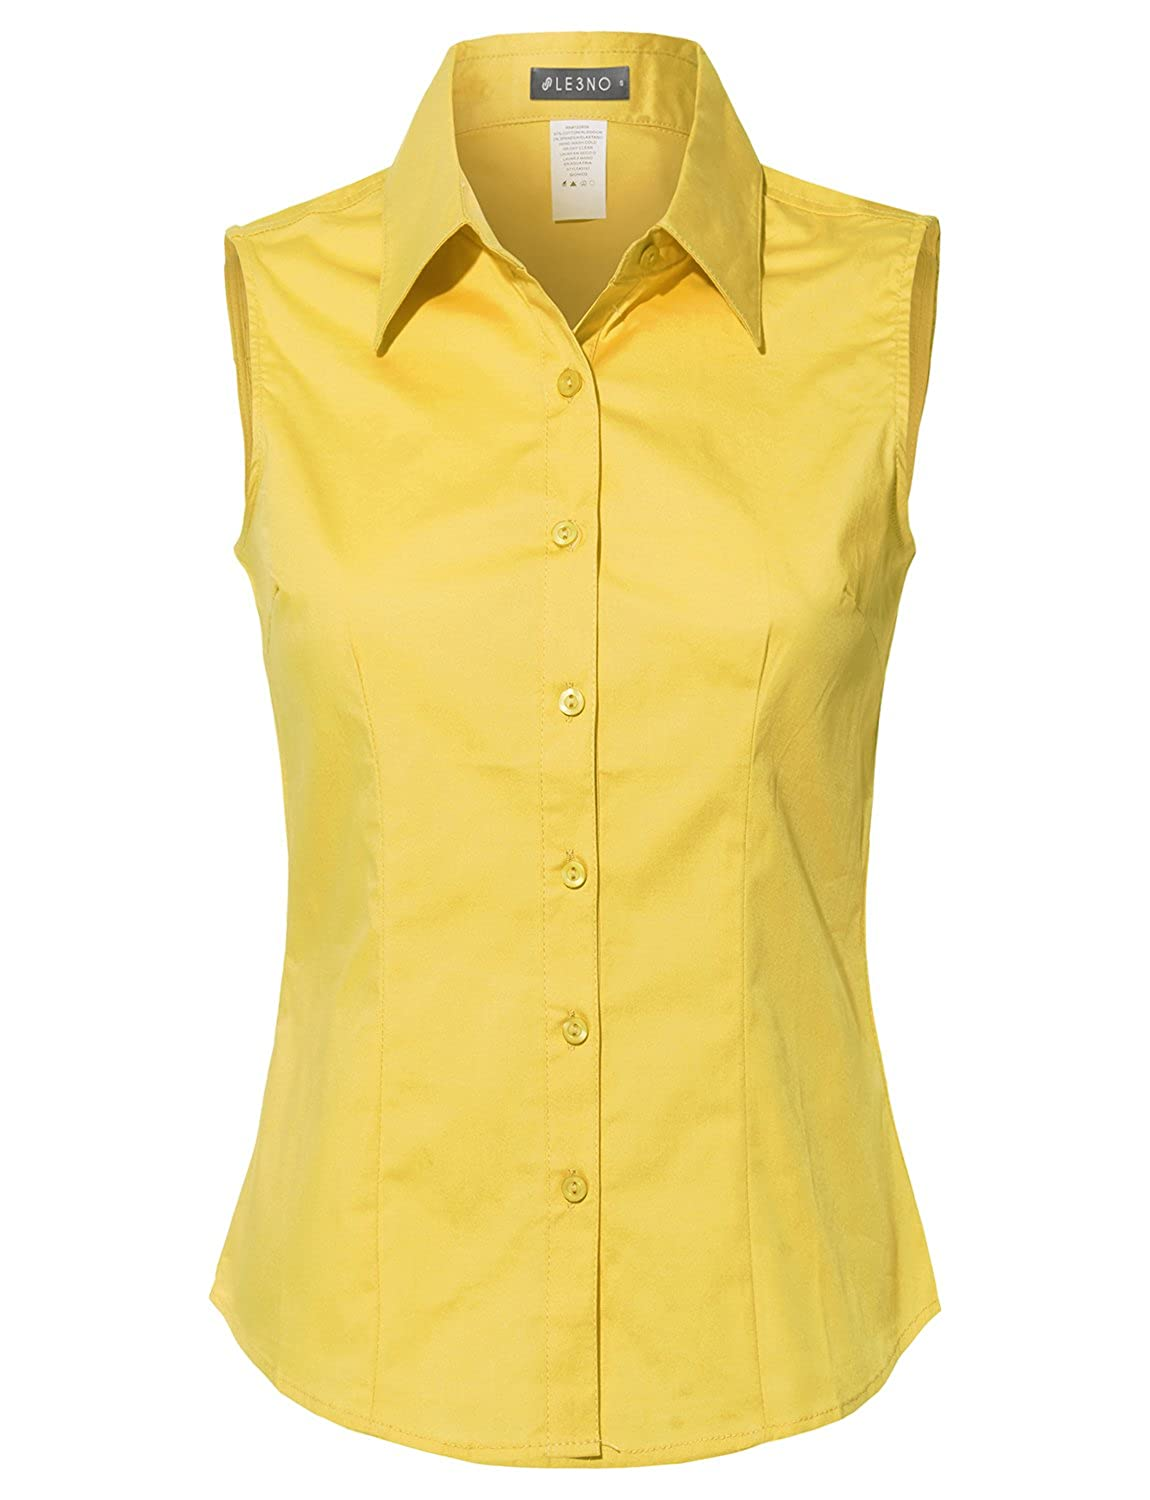 1950s Rockabilly & Pin Up Tops, Blouses, Shirts  Cotton Sleeveless Button Down Shirt $21.99 AT vintagedancer.com